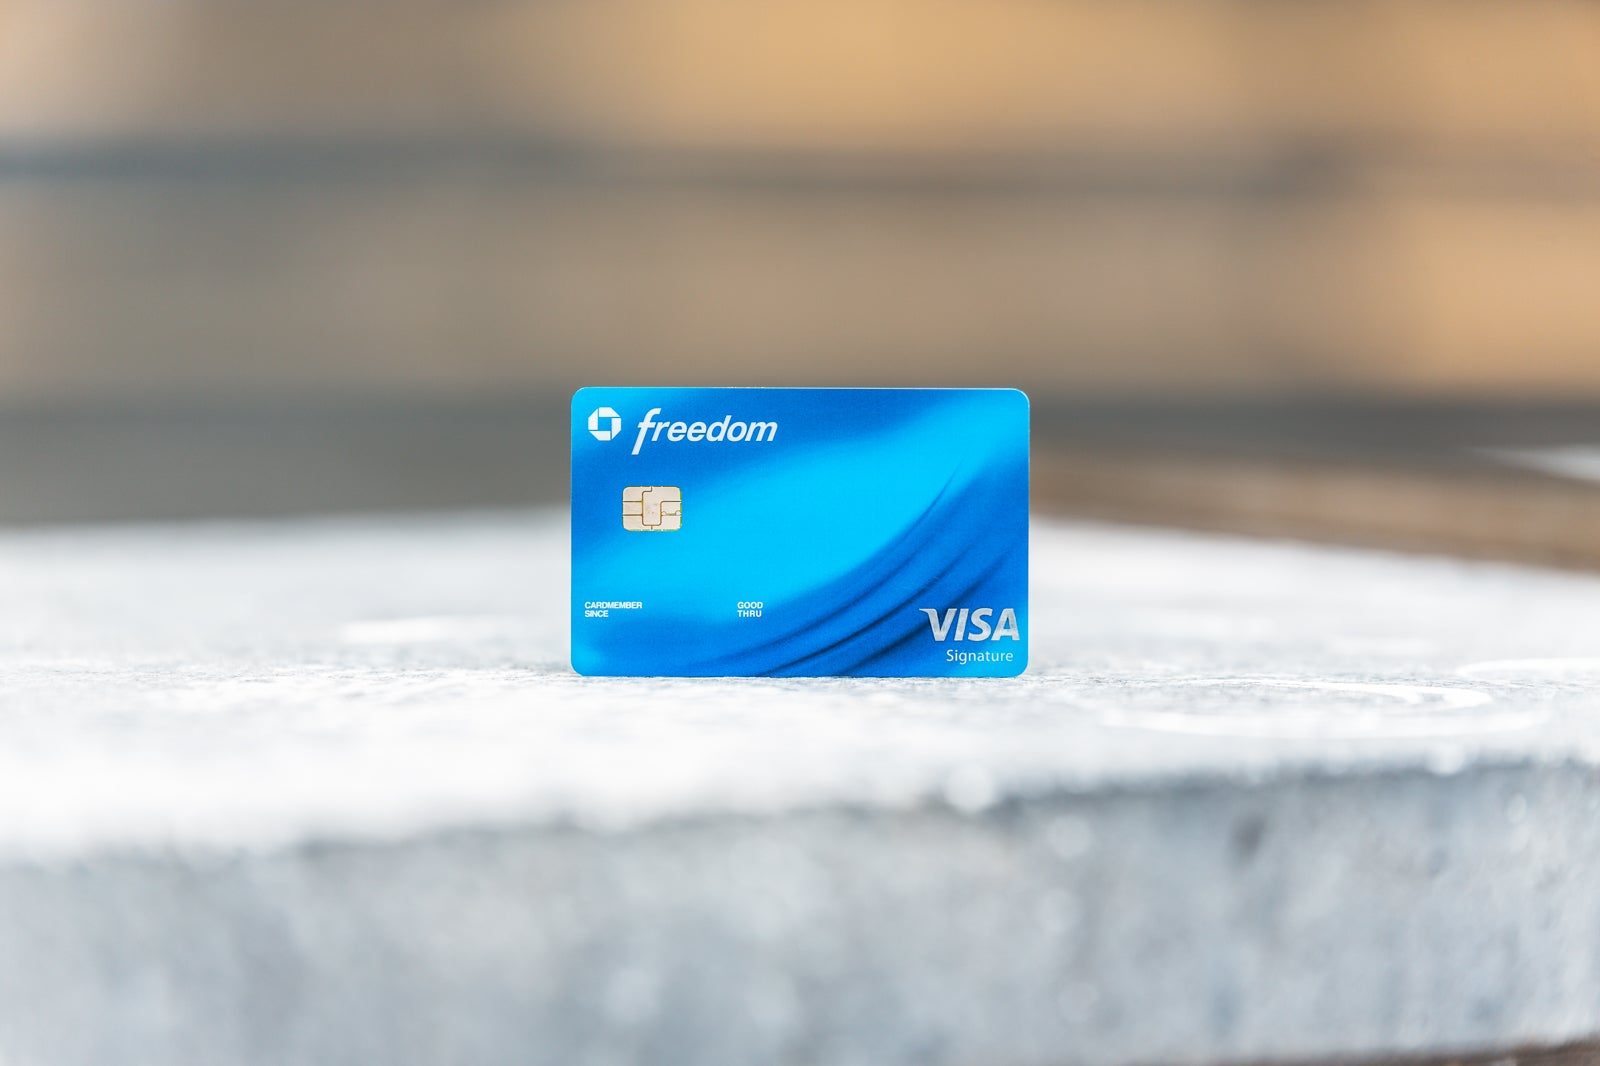 Chase Freedom review: No annual fee and terrific rotating bonus categories